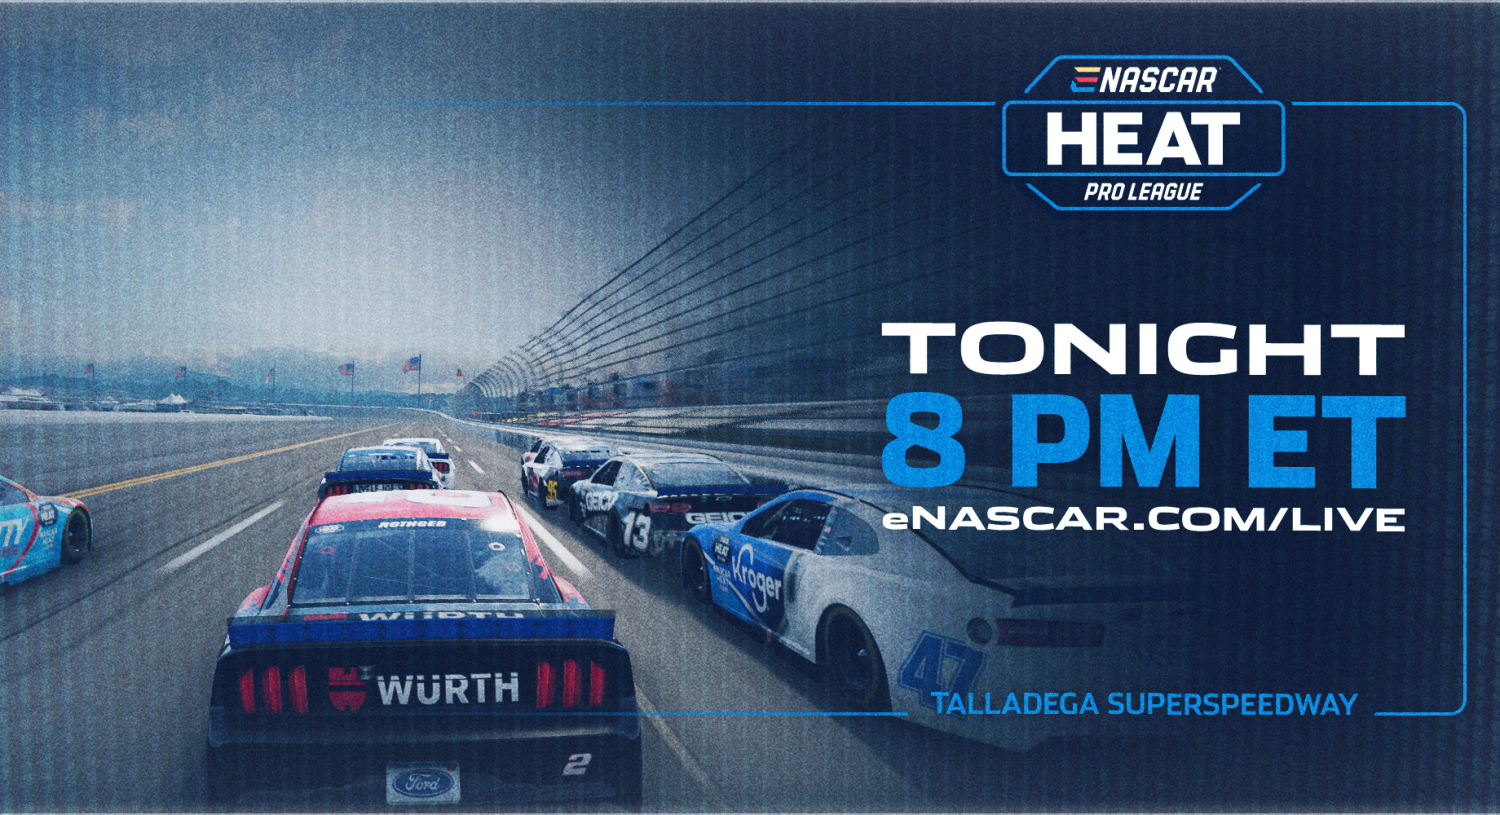 LIVE NOW: eNASCAR Heat Pro League from Talladega